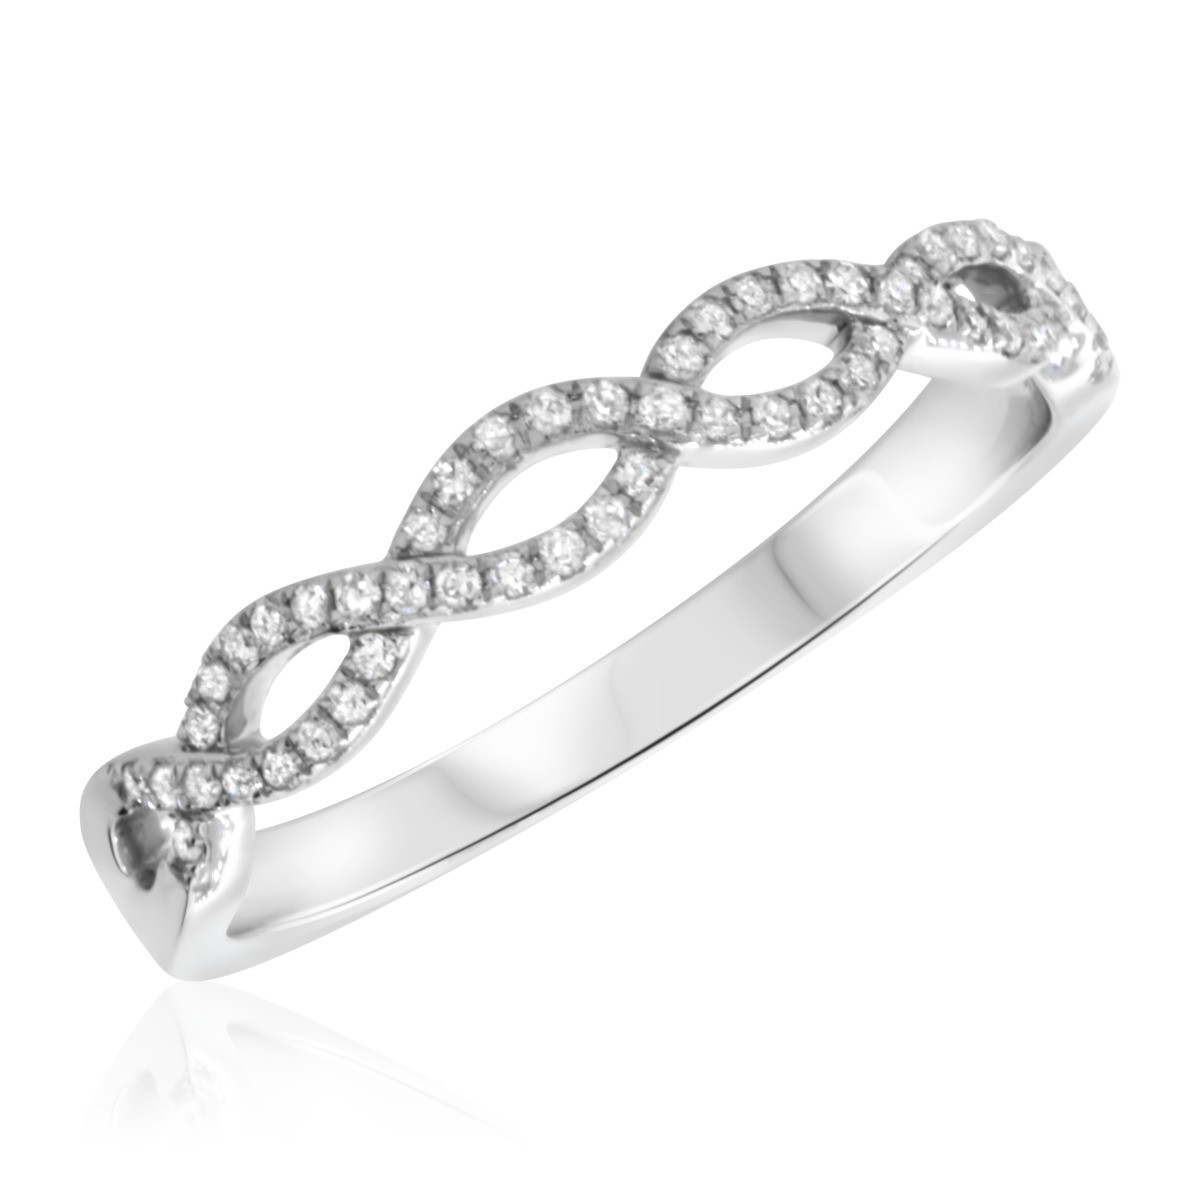 1/5 CT. T.W. Diamond Ladies Wedding Band  14K White Gold